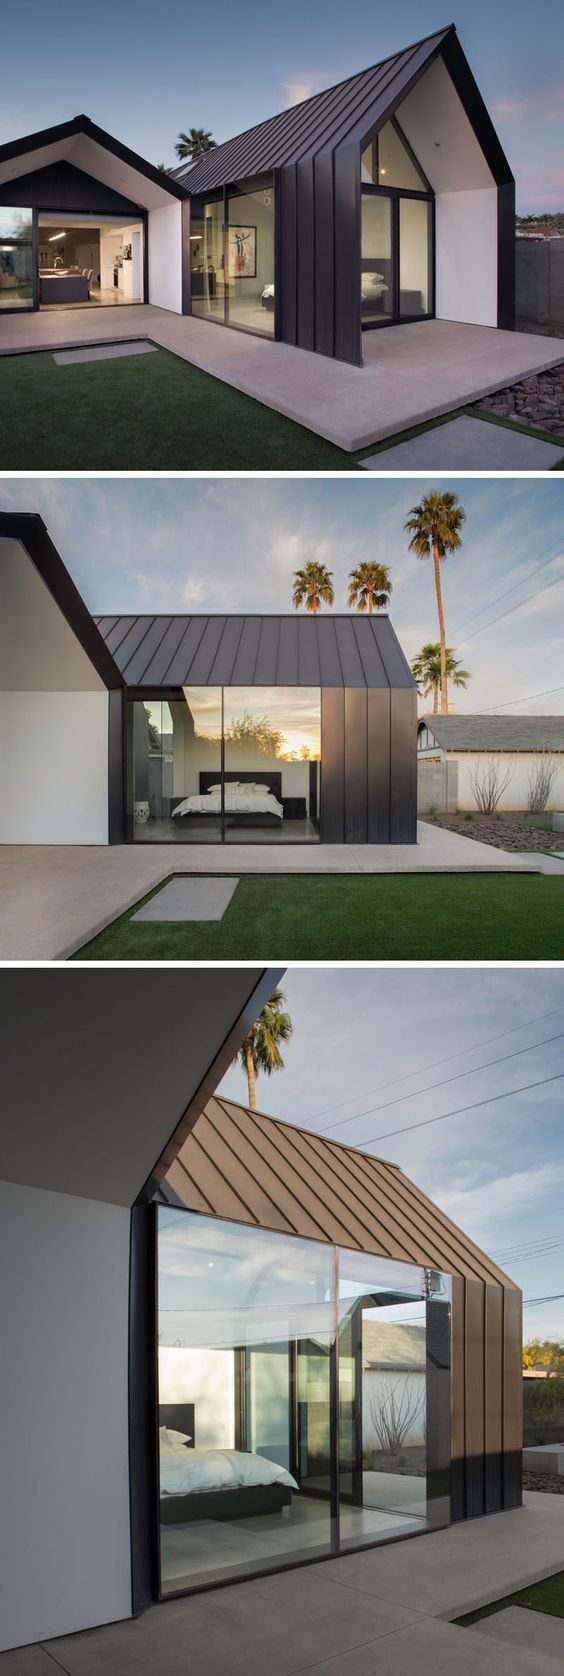 A contemporary update and extension for a 1930s home in Phoenix ...